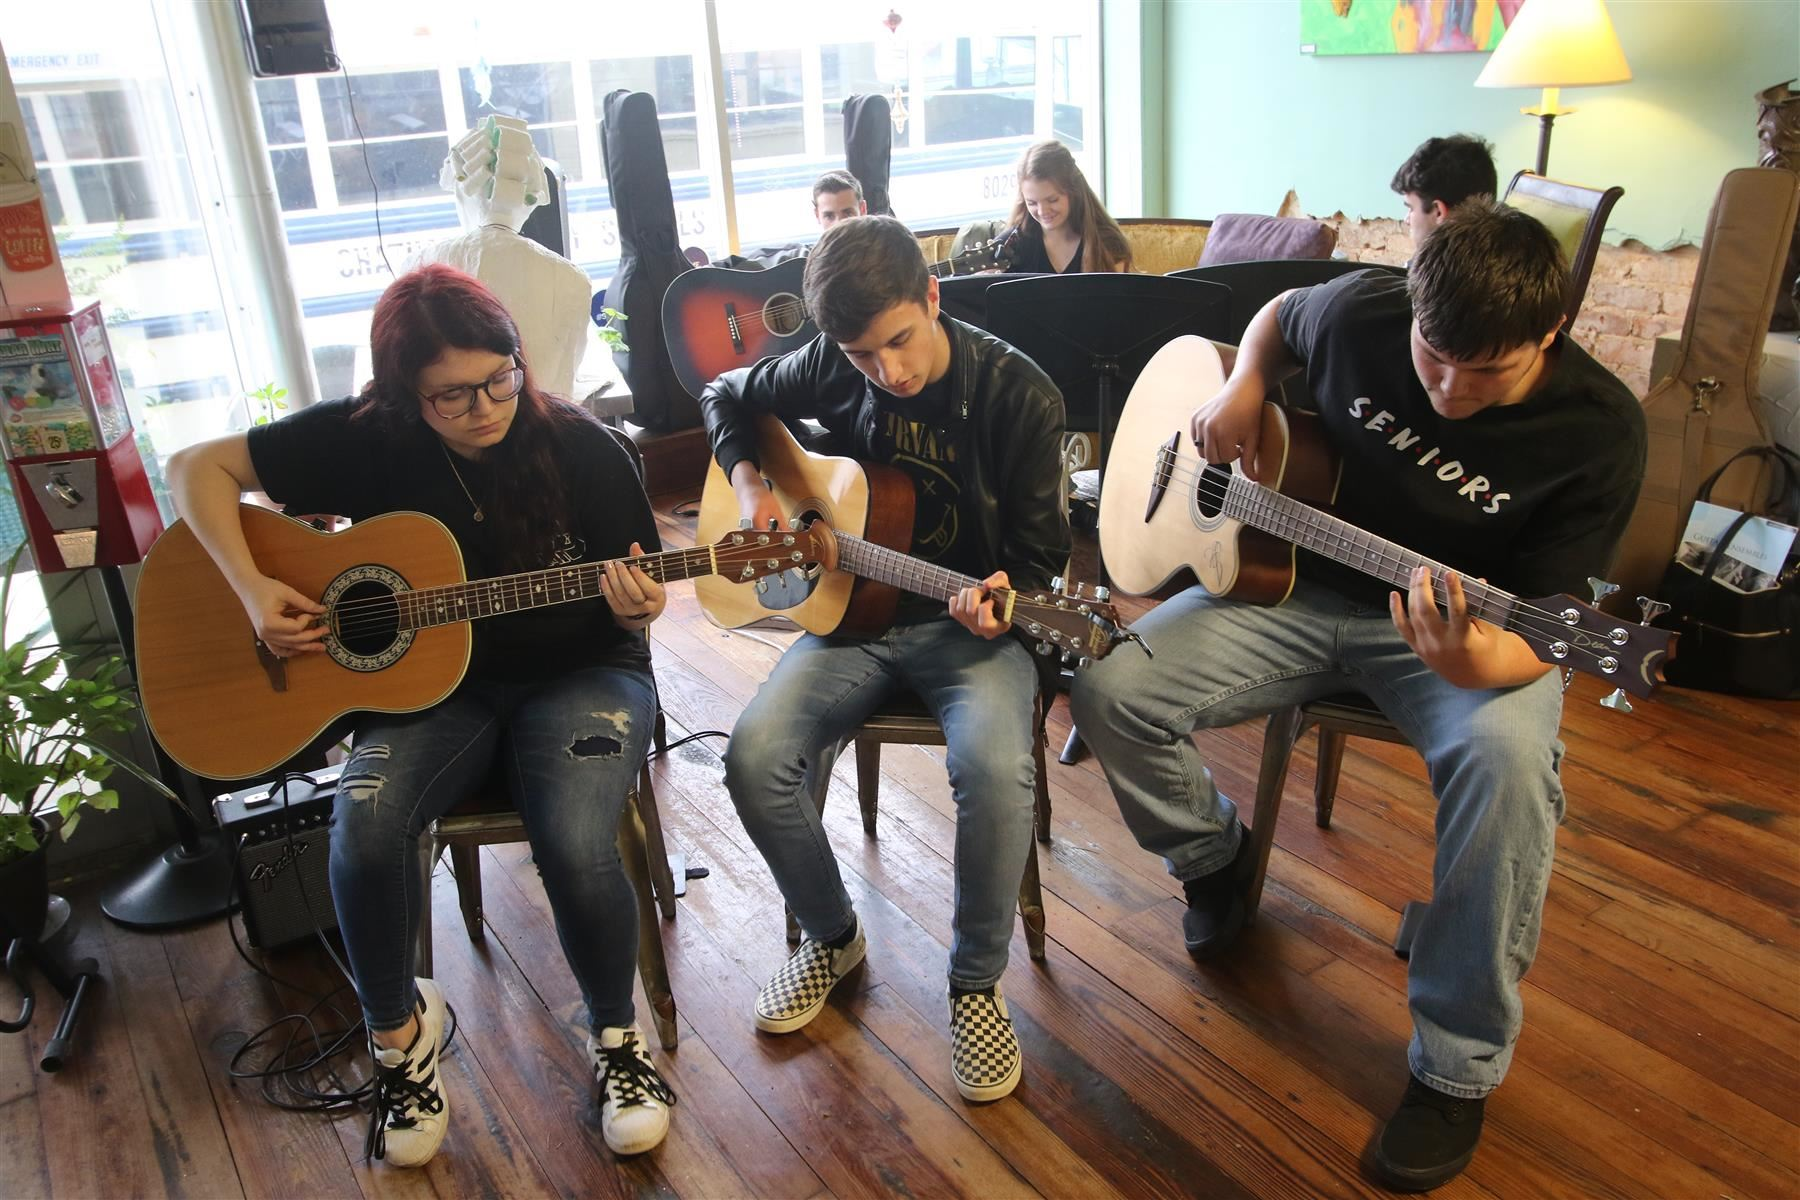 The Chatham Central High School Guitar Ensemble performs at Peppercorn in downtown Siler City on March 26, 2019.